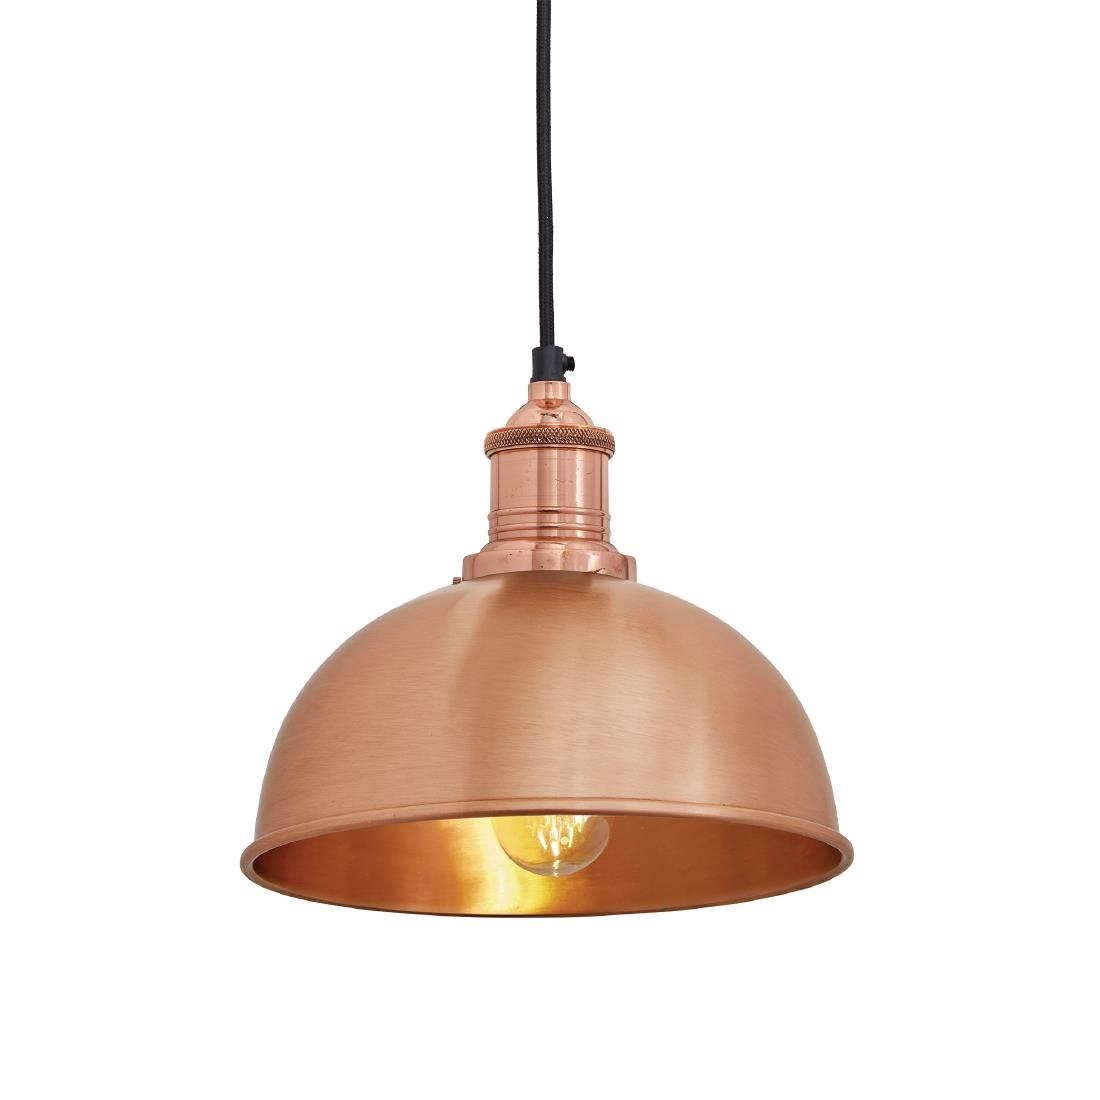 Image of Industville Brooklyn Dome Pendant Light Copper 200mm